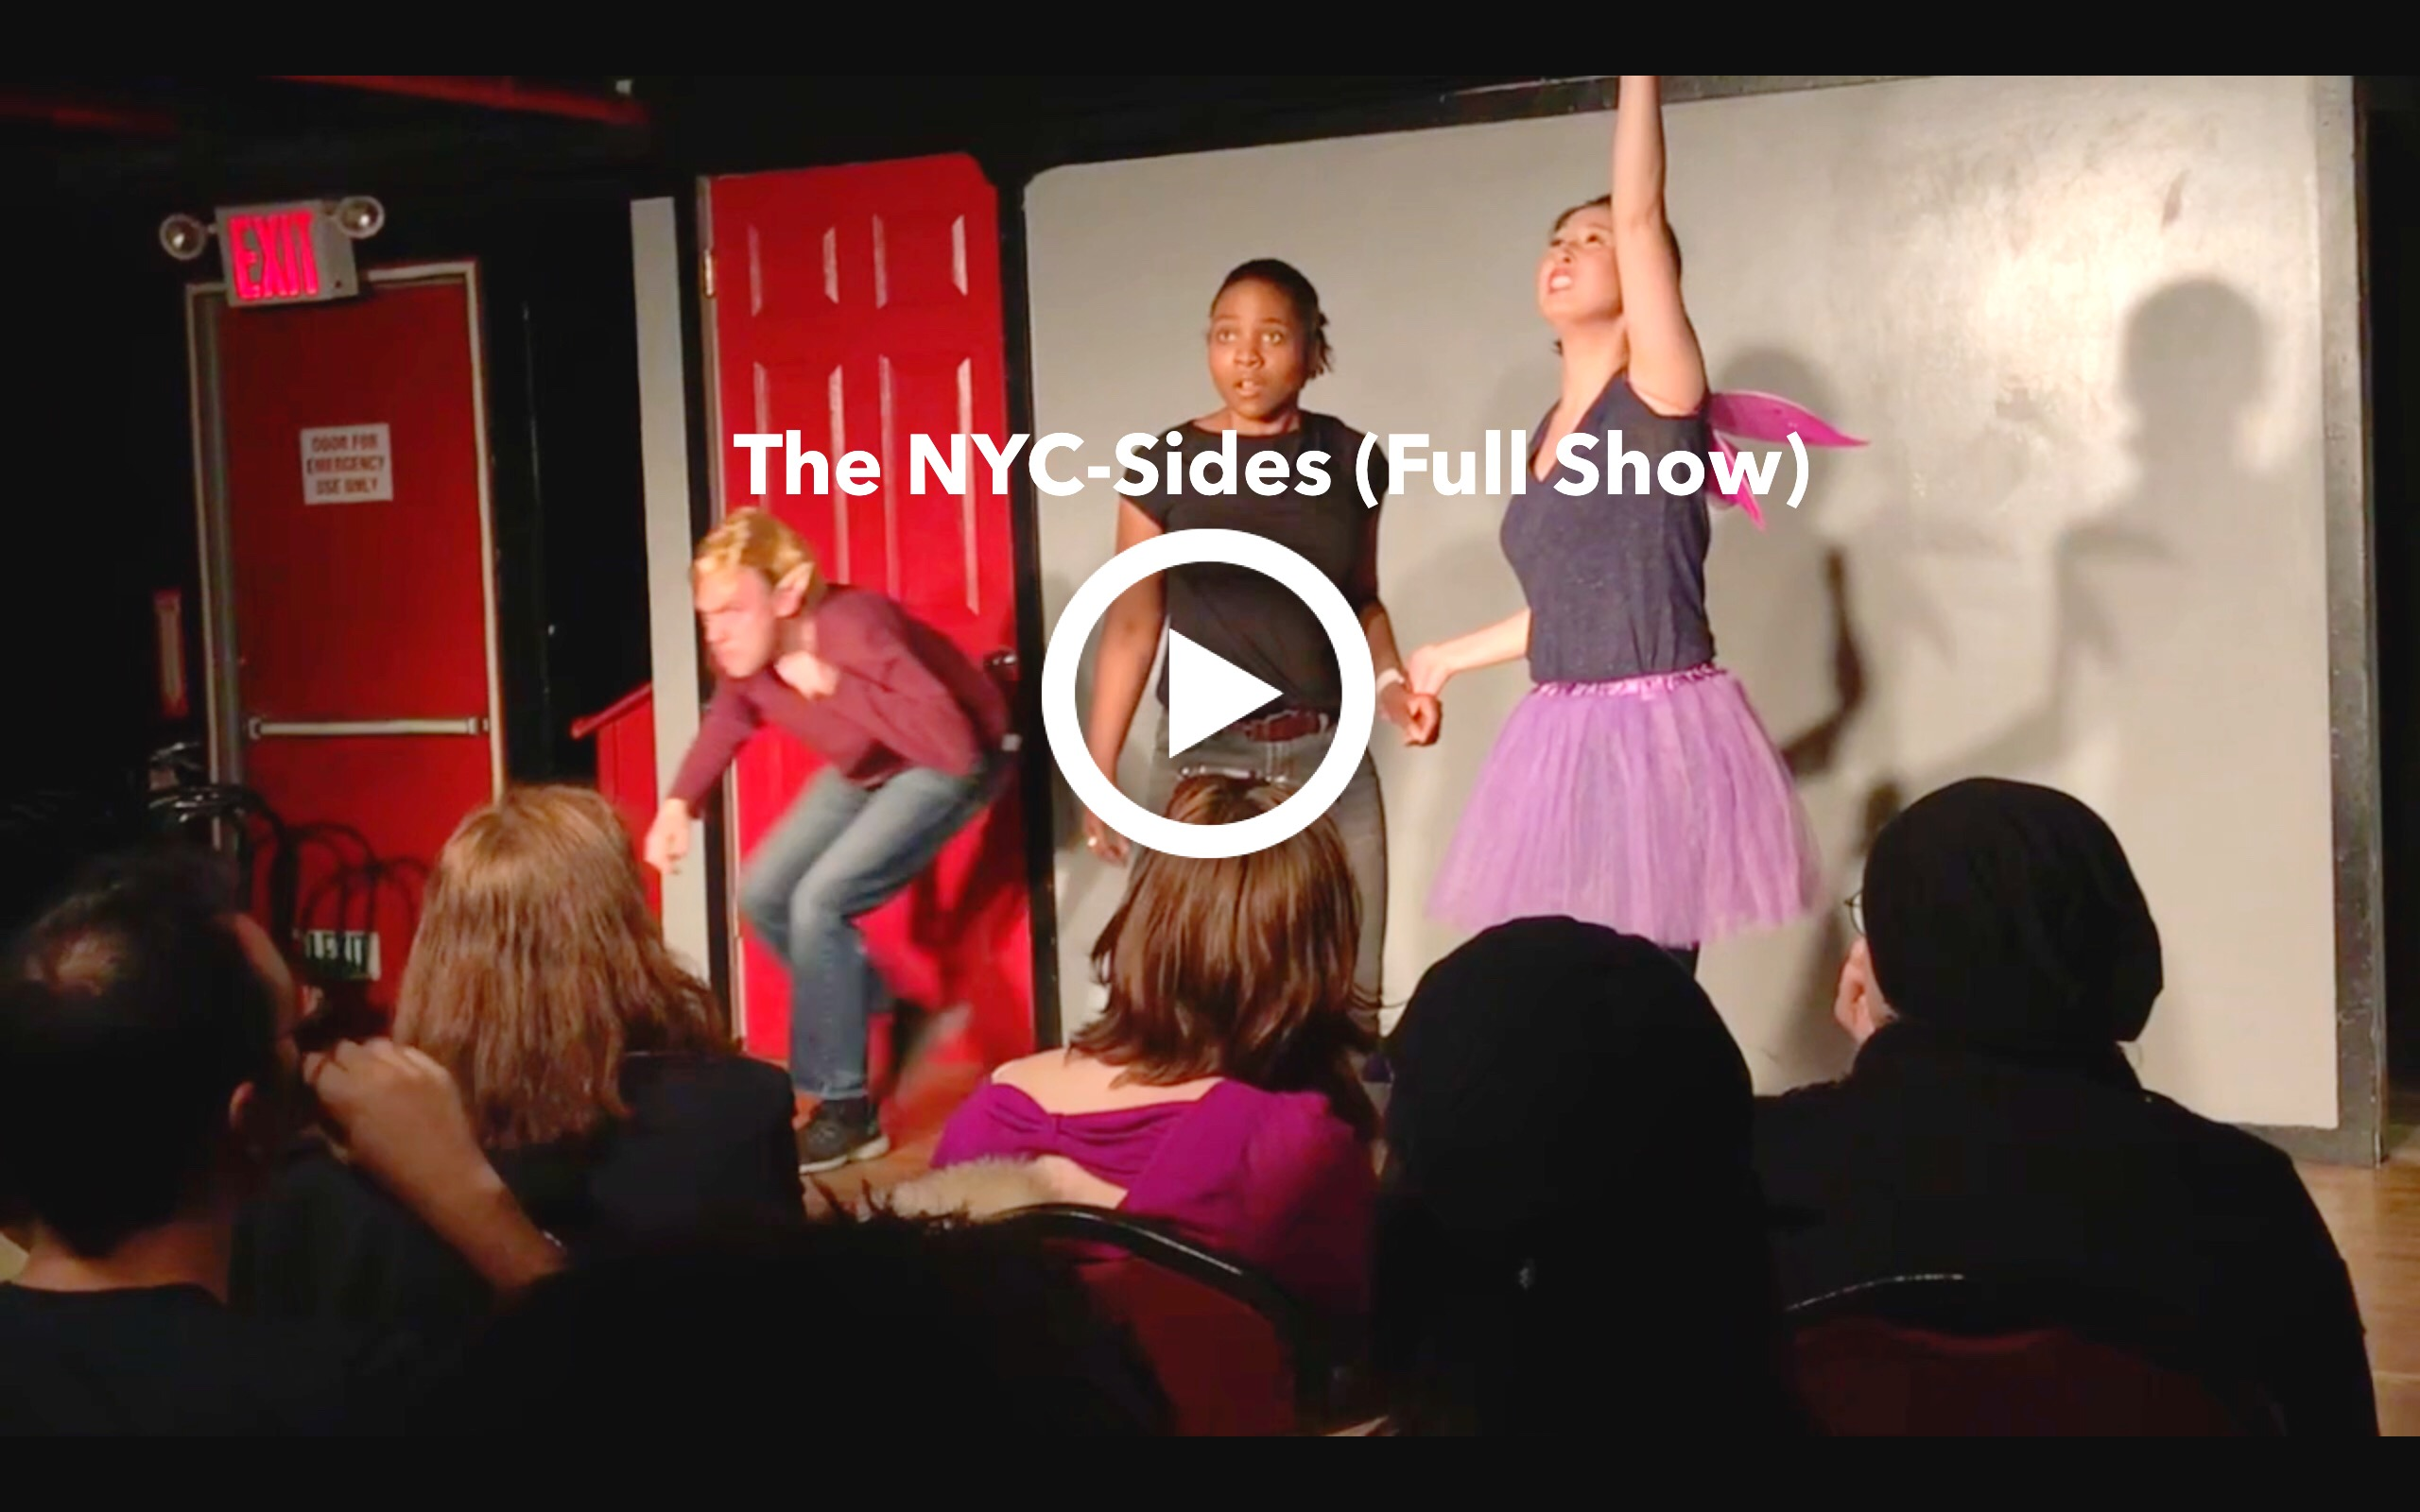 The NYC-Sides (Full Show Video): https://drive.google.com/open?id=1KMOnvyg-3k3-VyrxI-cPSN9U1hHV2mxz